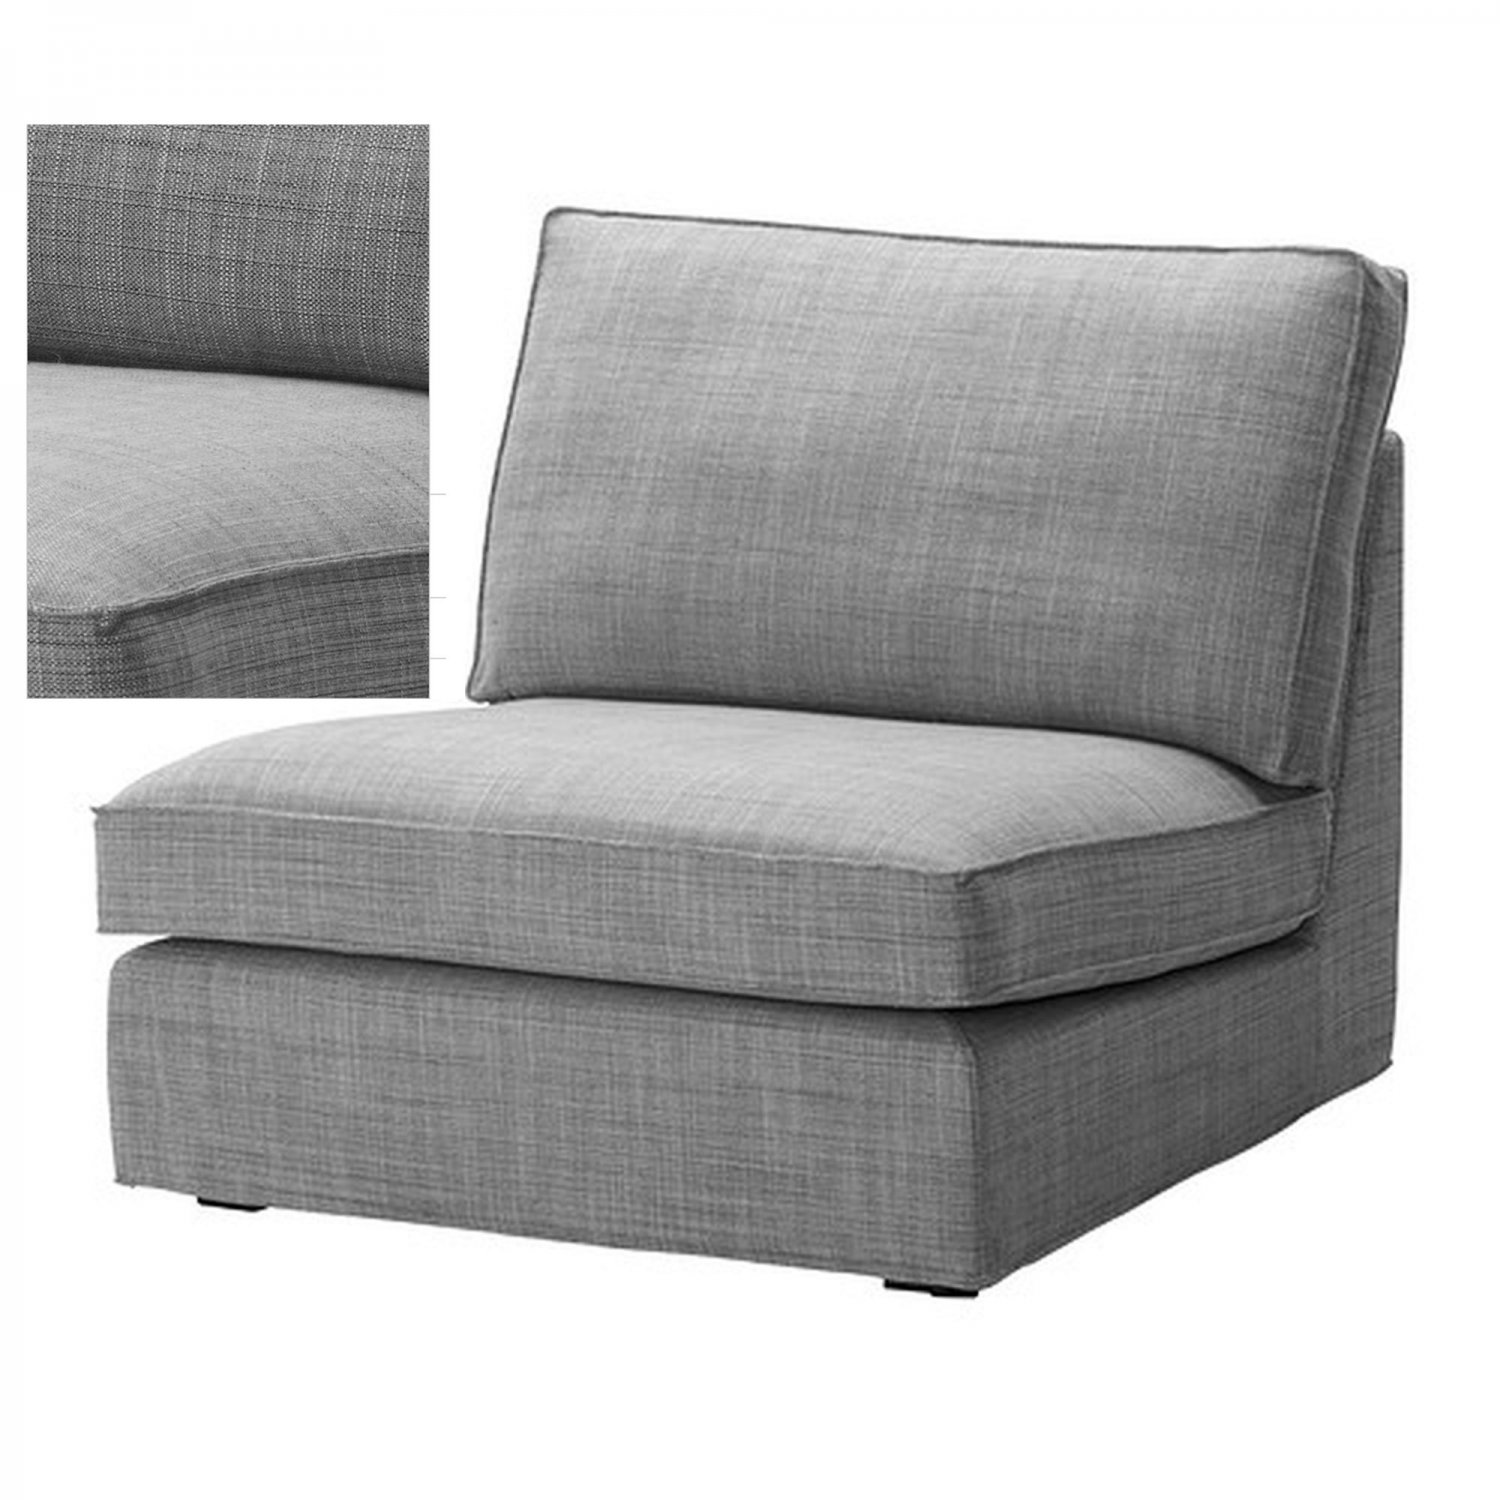 sofa seat covers in kenya reviews made beds ikea kivik 1 slipcover one chair cover